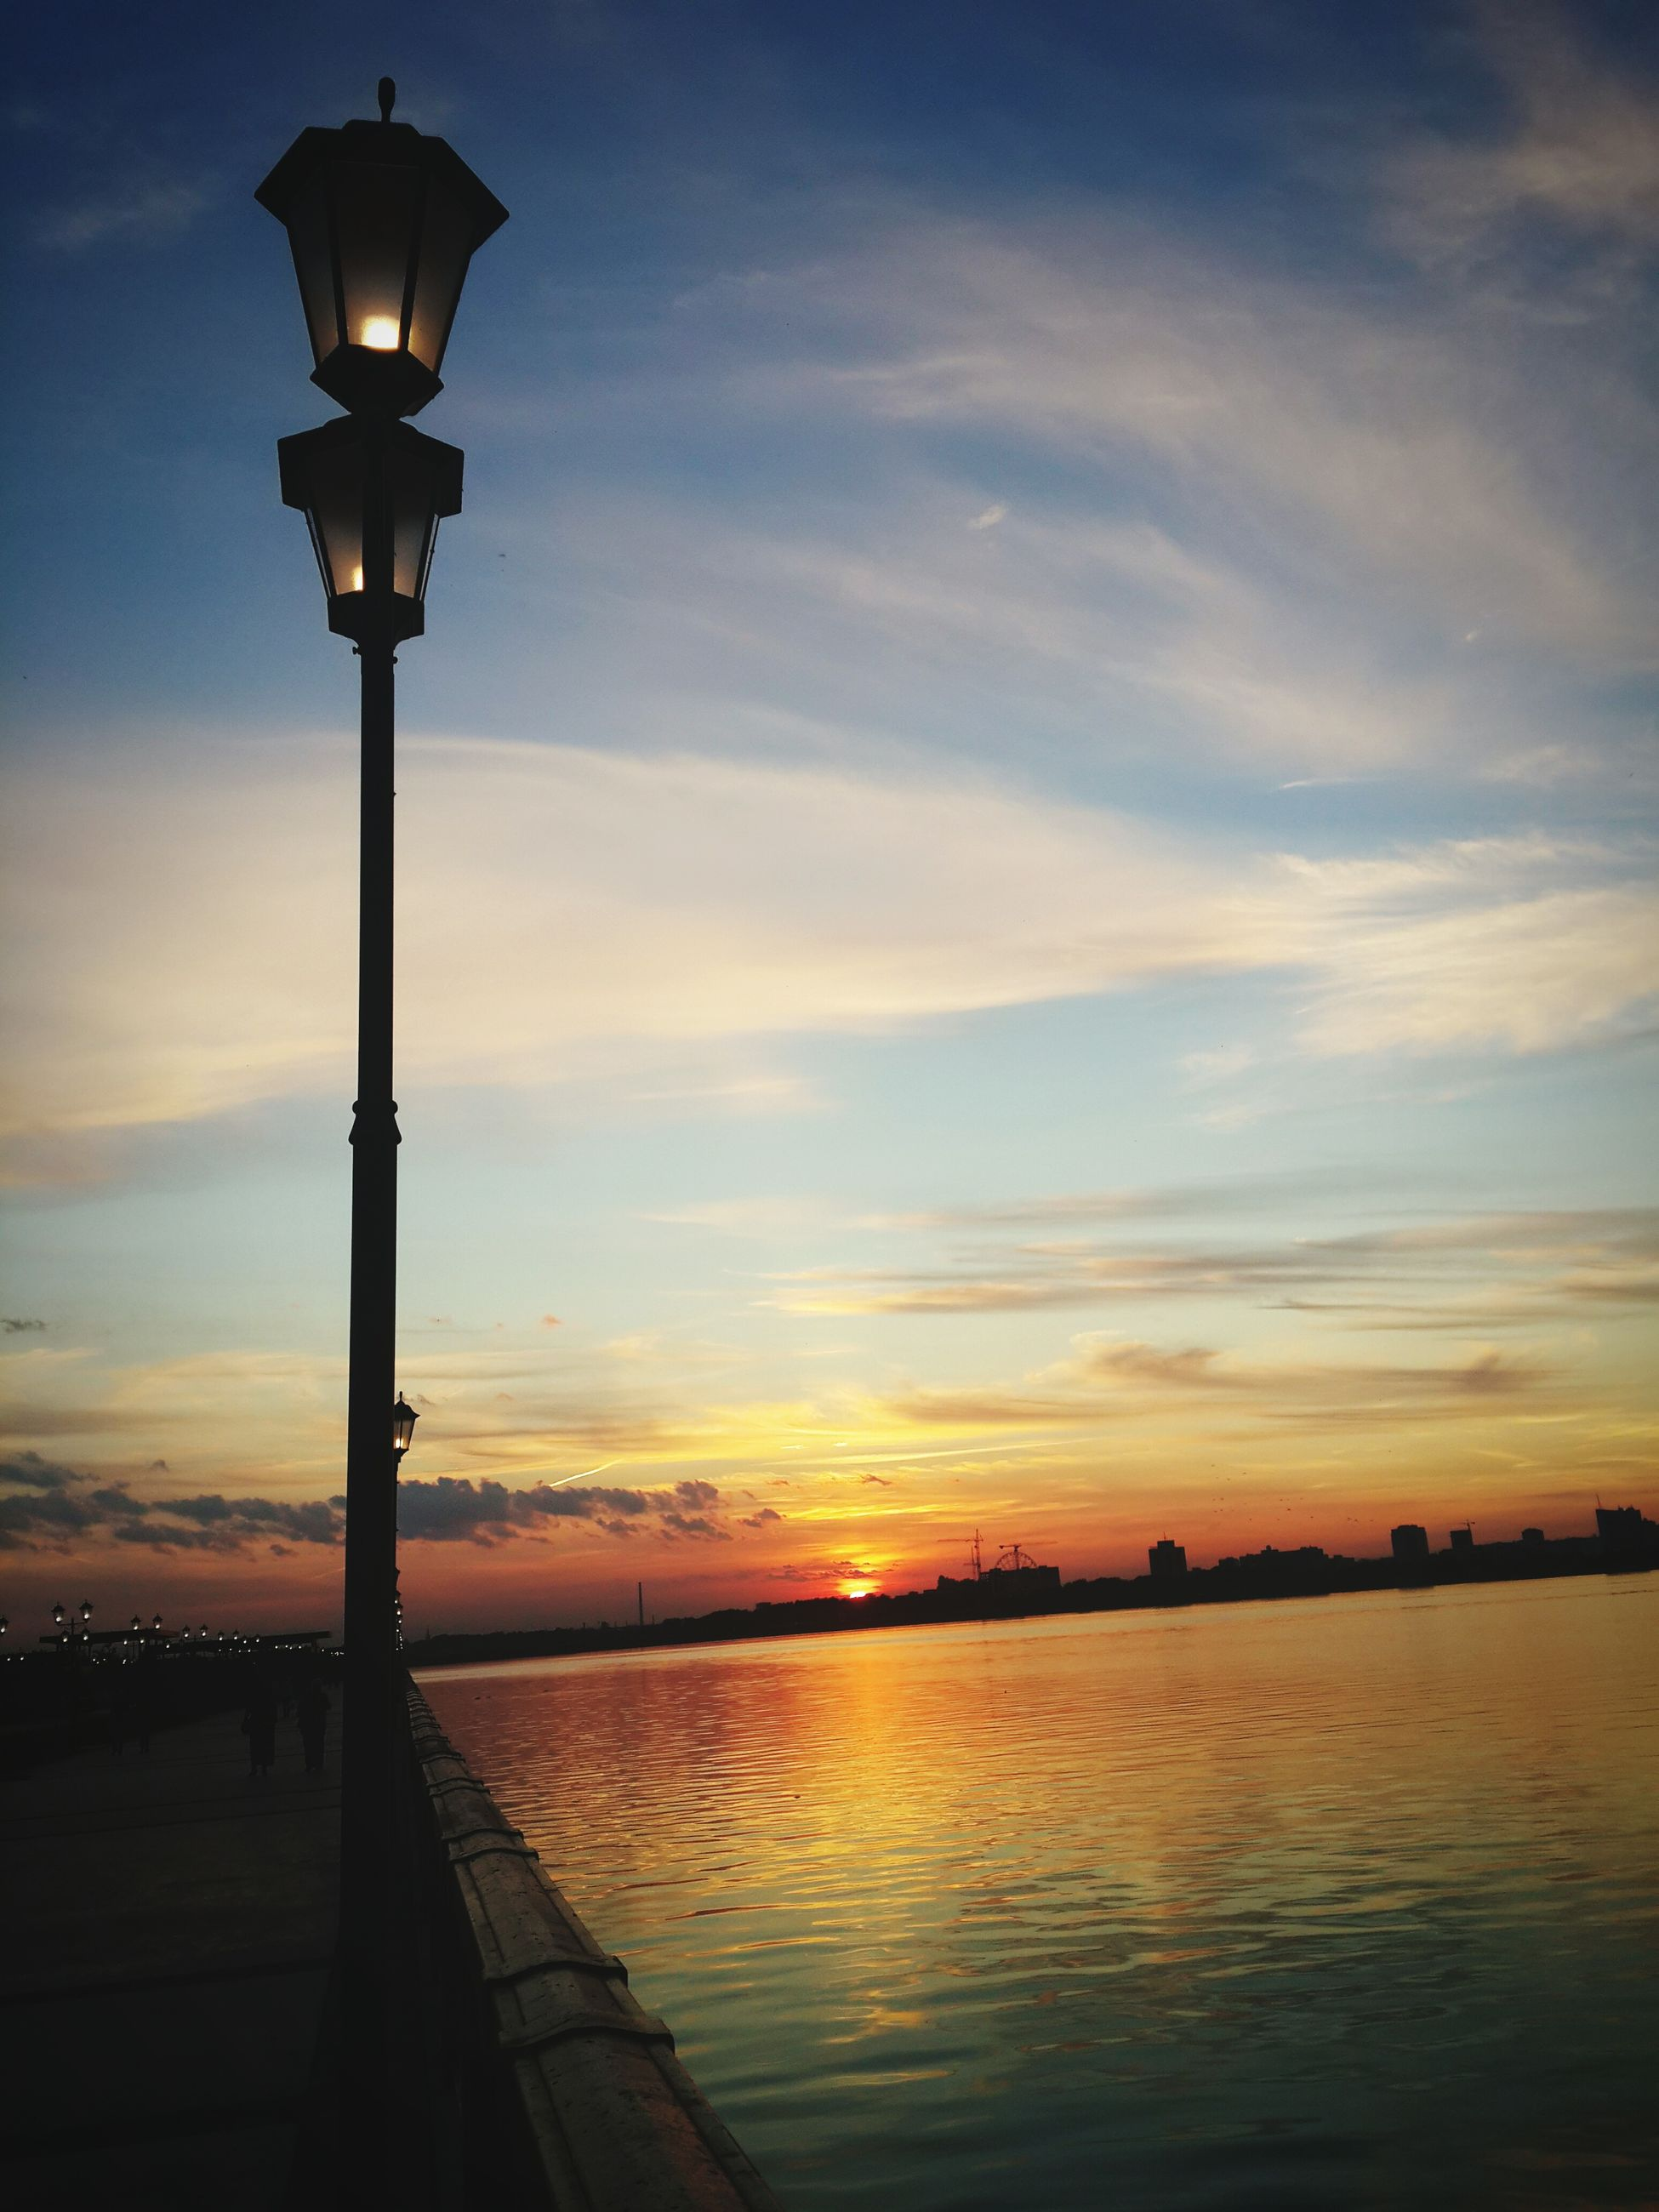 sunset, water, sky, street light, silhouette, scenics, tranquility, sea, tranquil scene, beauty in nature, reflection, lighting equipment, nature, cloud - sky, orange color, idyllic, sun, cloud, pier, outdoors